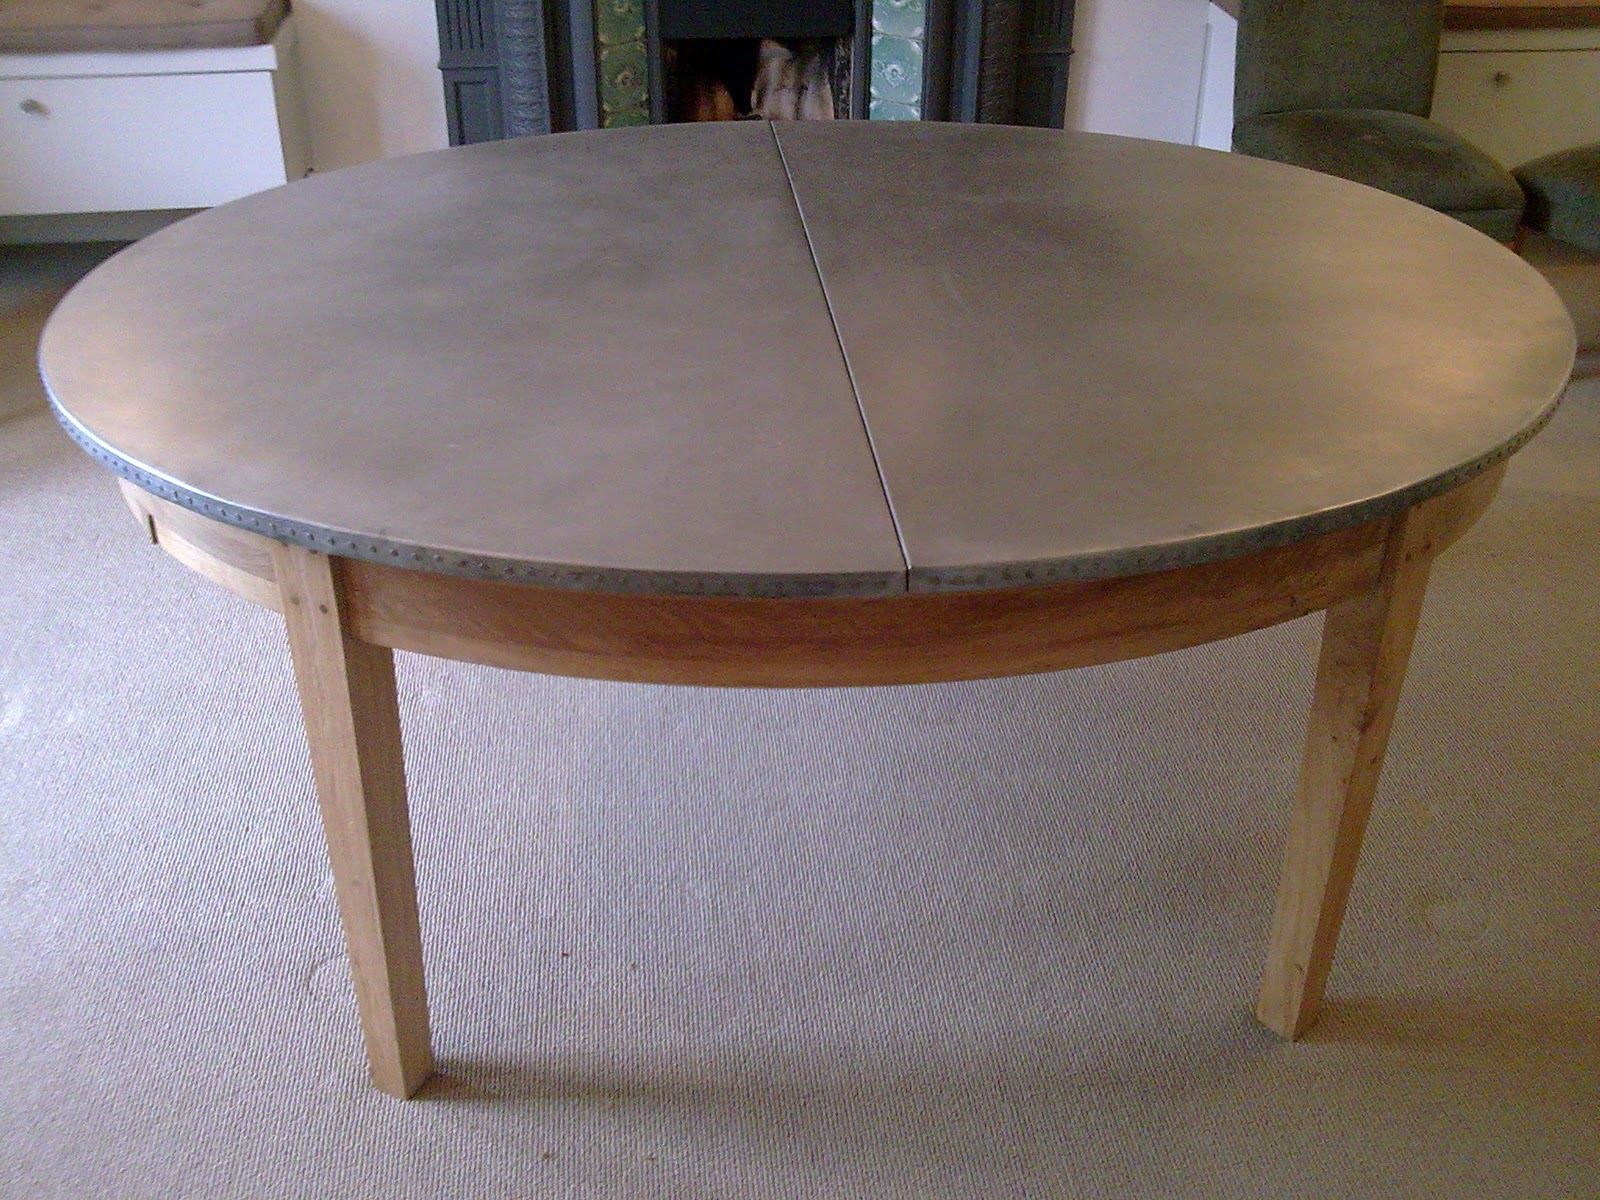 Deballage Designs Oval oak table with a studded zinc top